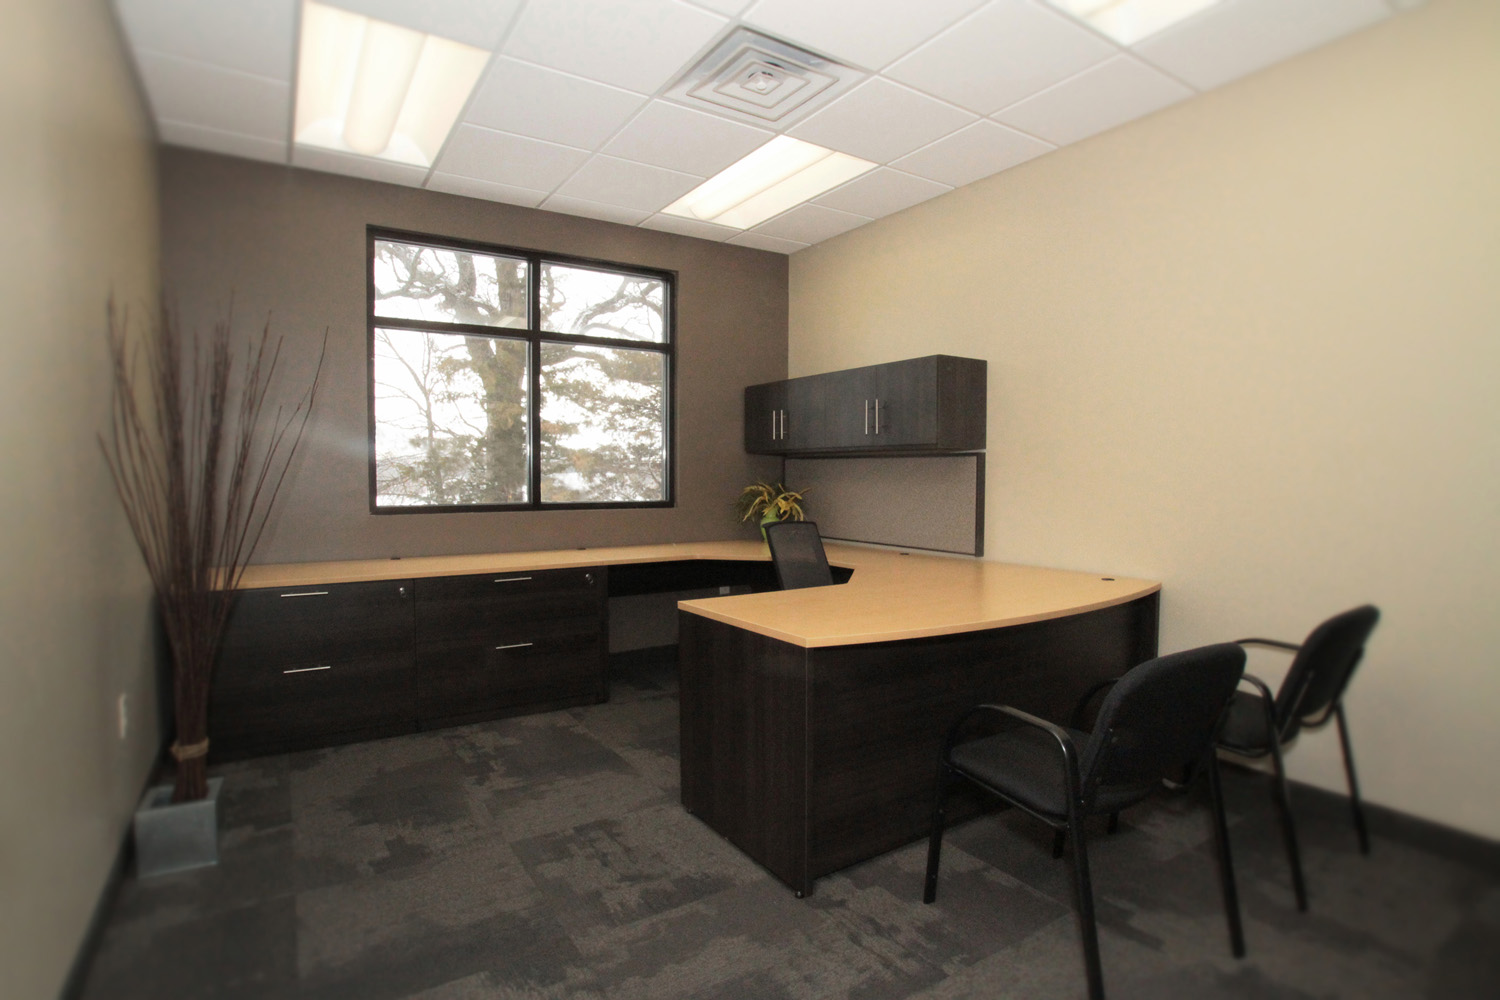 Office space design mankato new used office for Office room layout